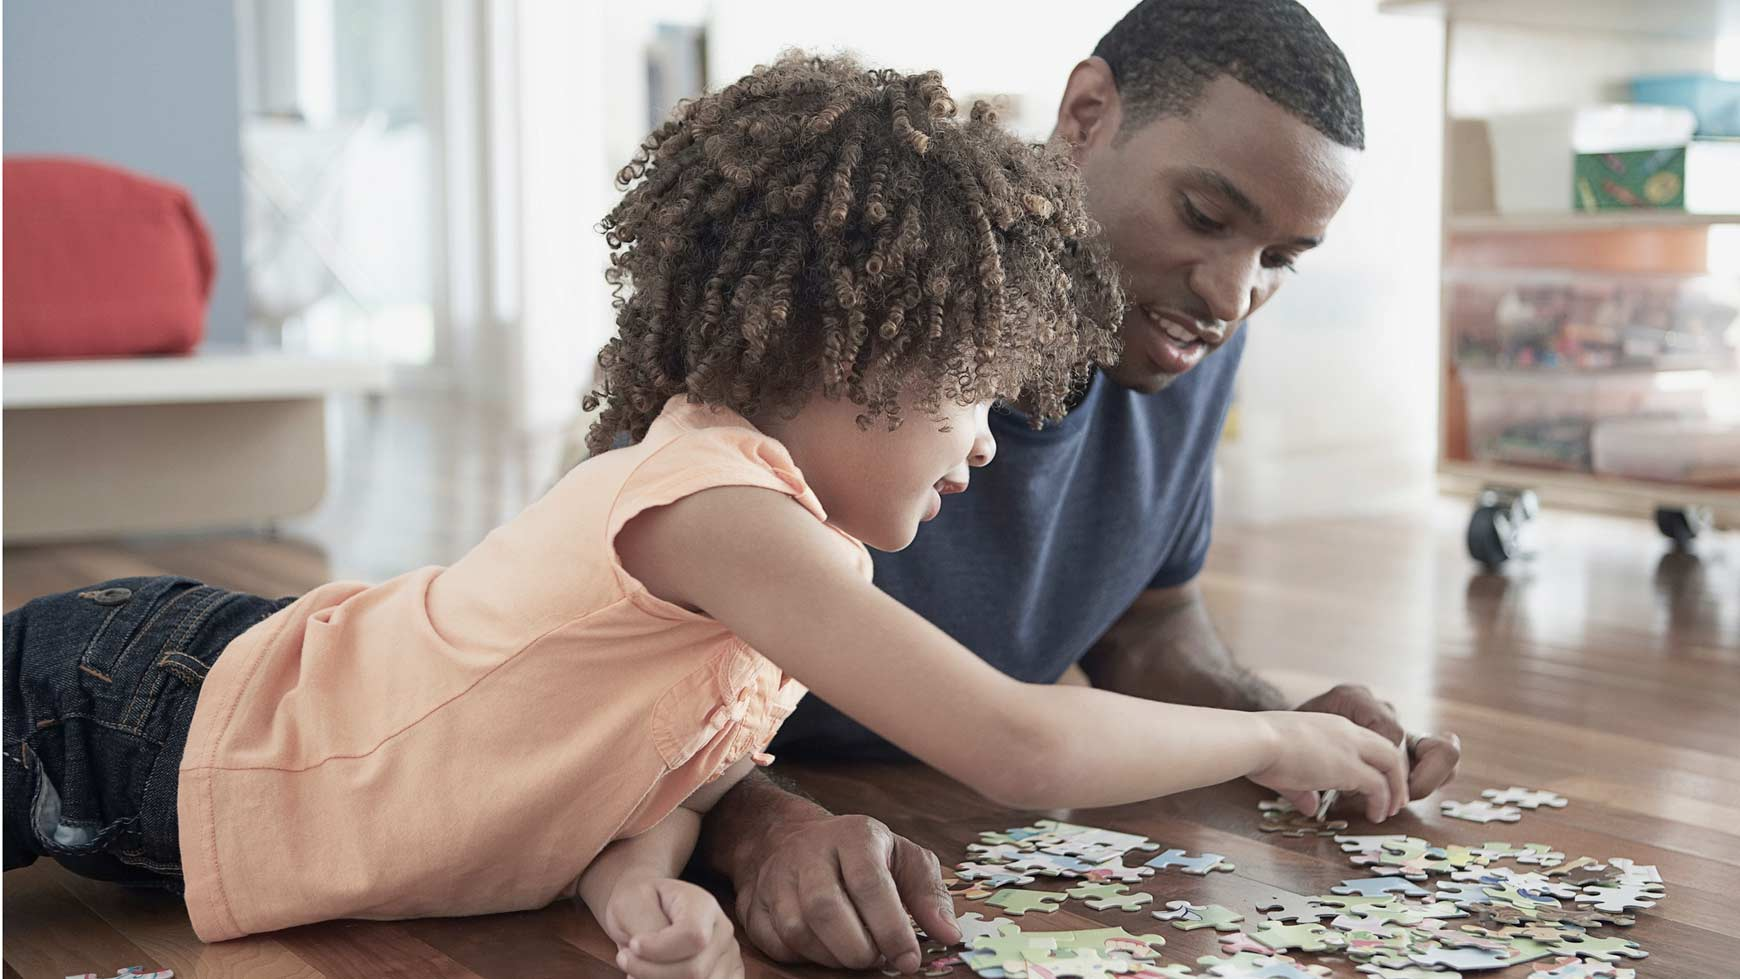 Are There Any Strategies I Can Use To Help My Child Concentrate Better?